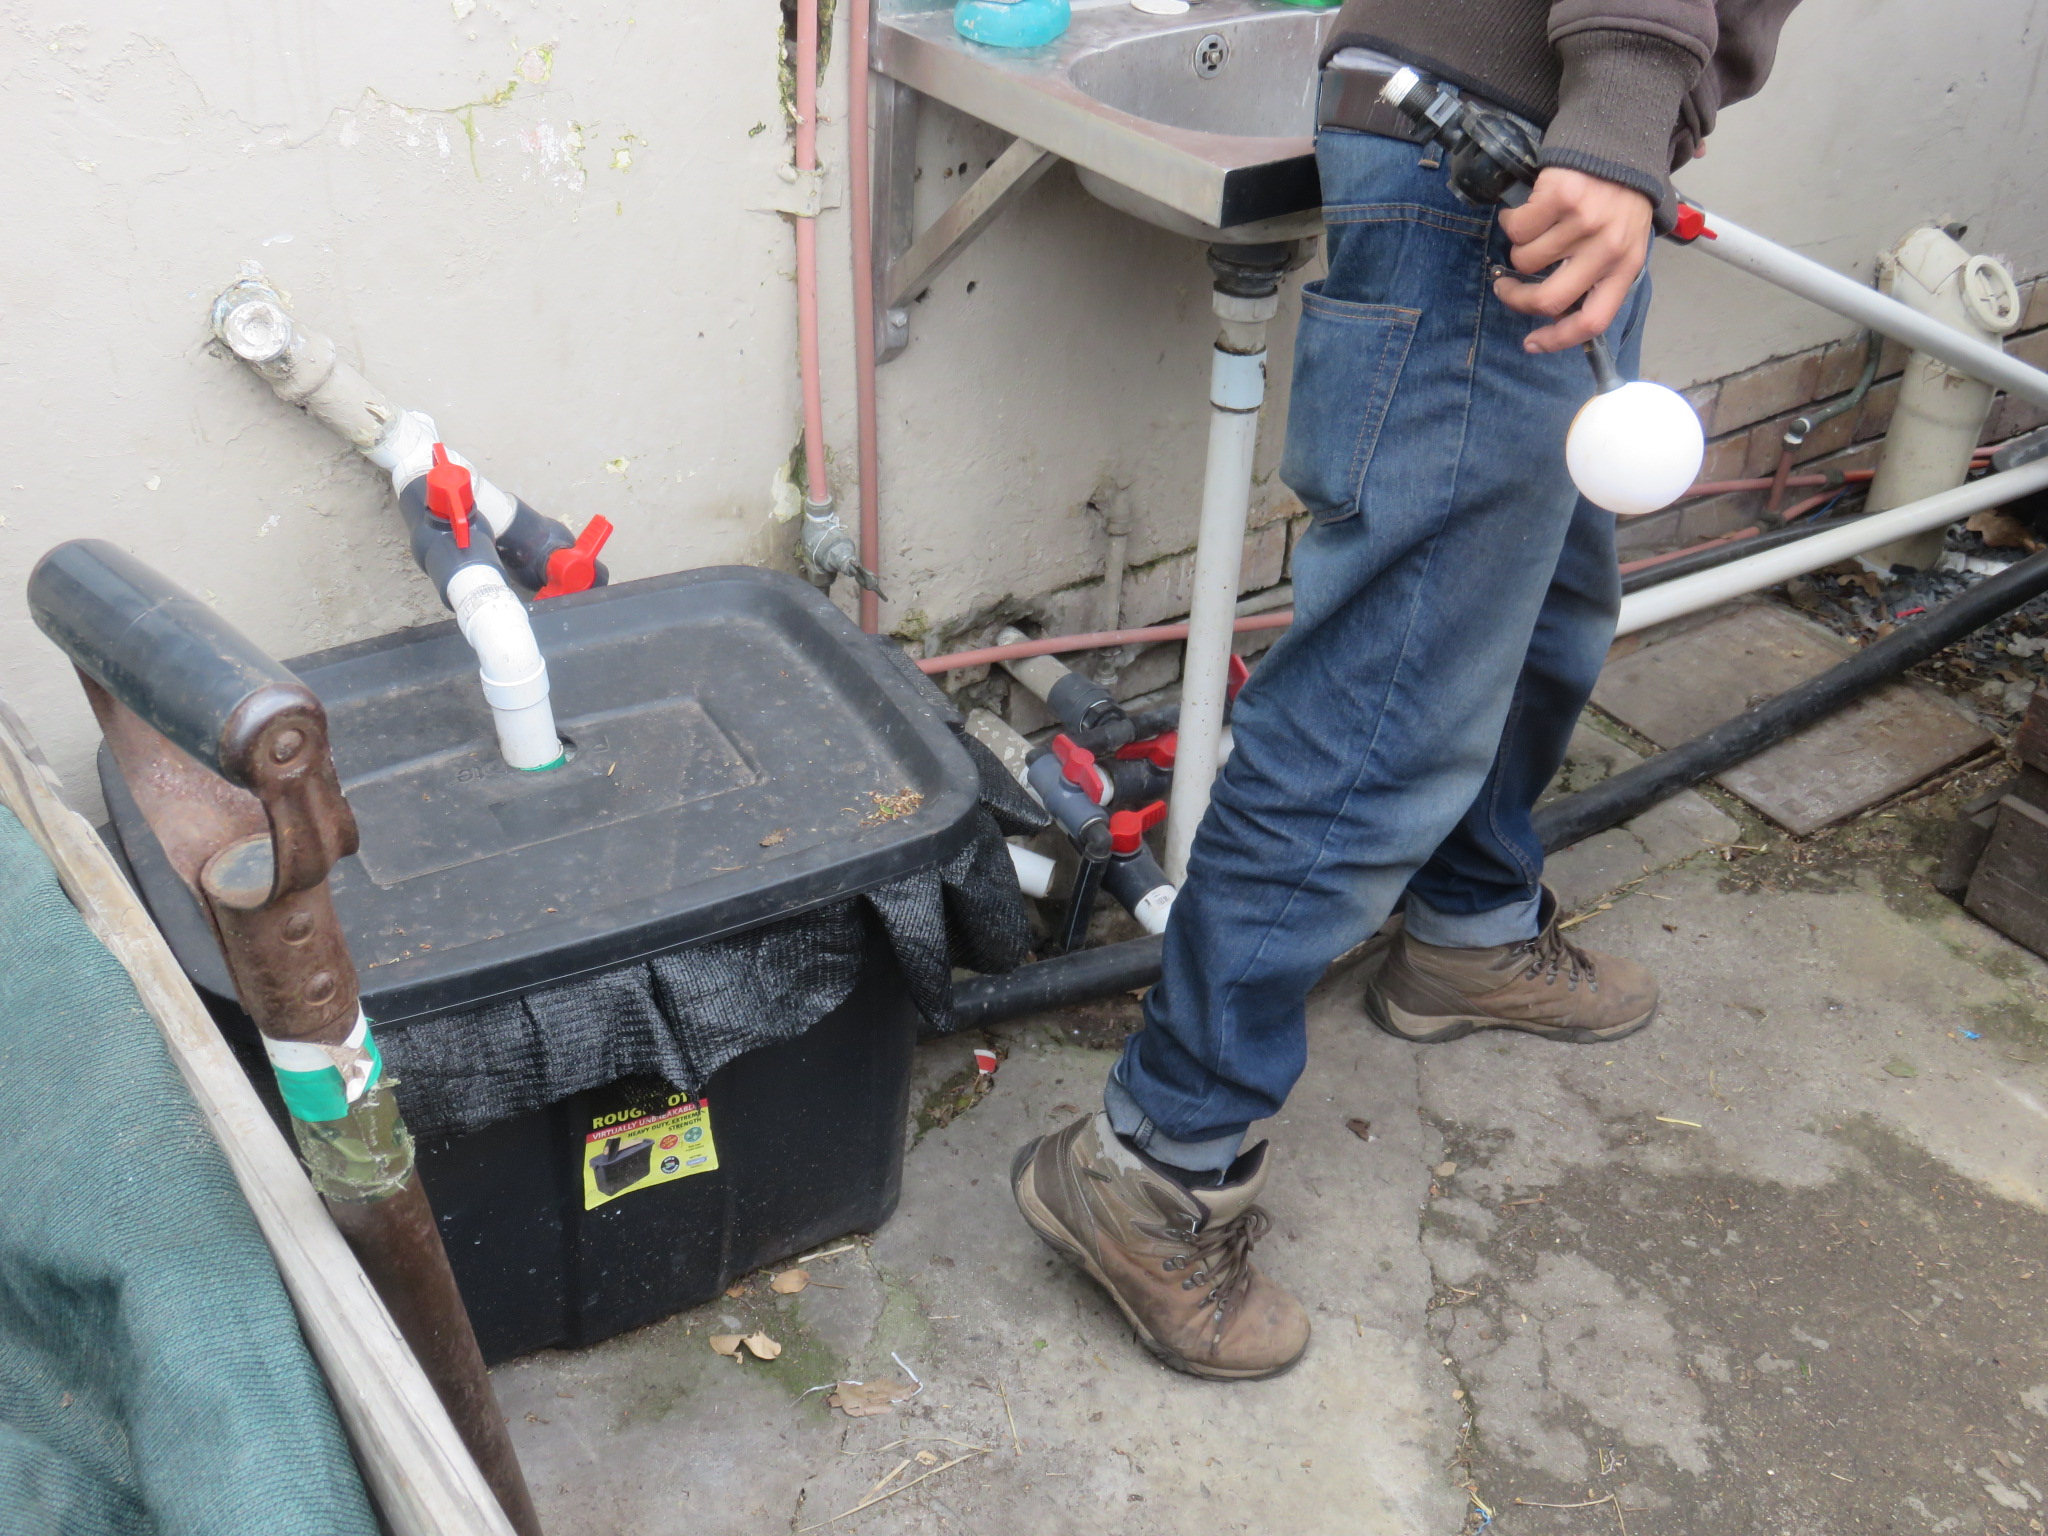 kitchen sink outflow into worm bin with diversion into waste water if needed. Worm bin lead into surge tank.